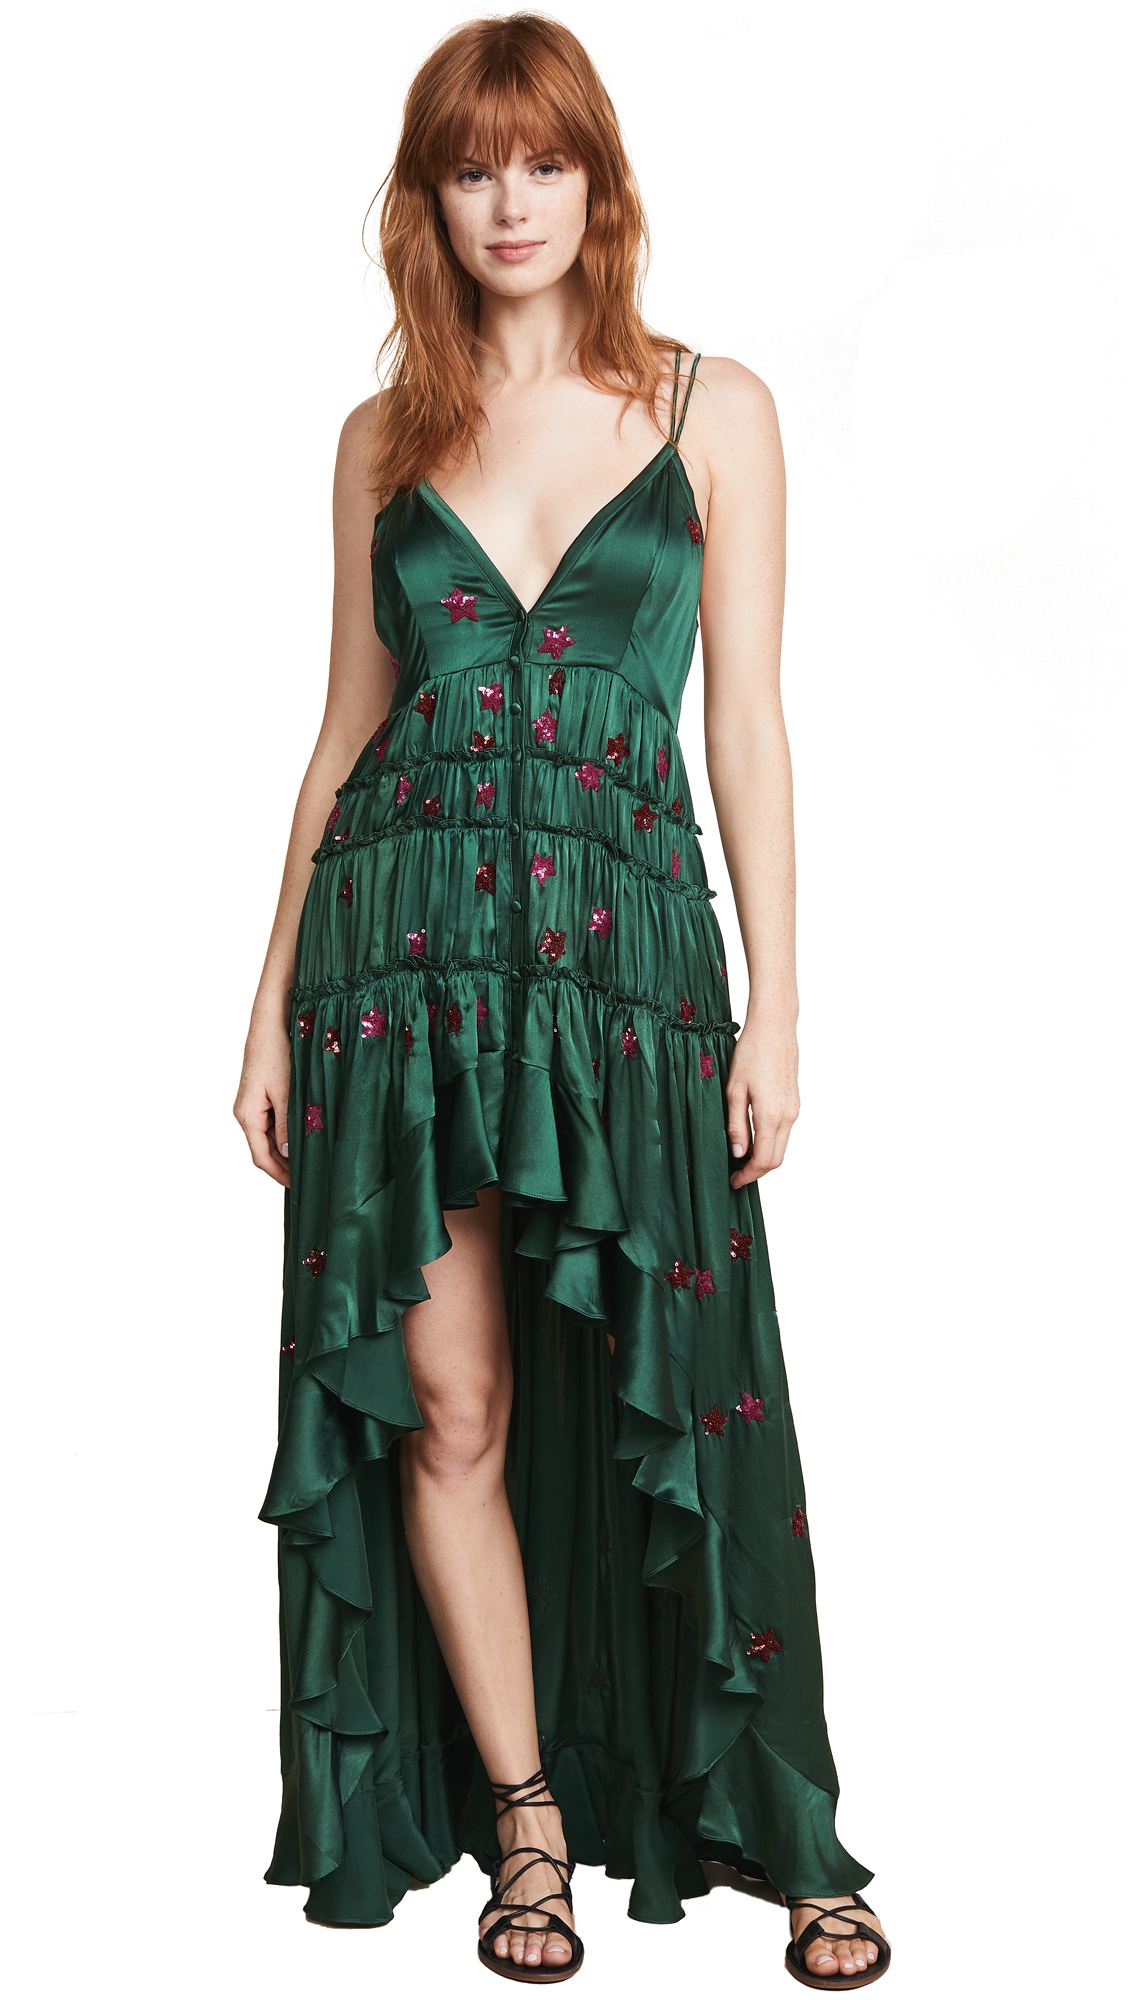 ROCOCO SAND High Low Dress in Green